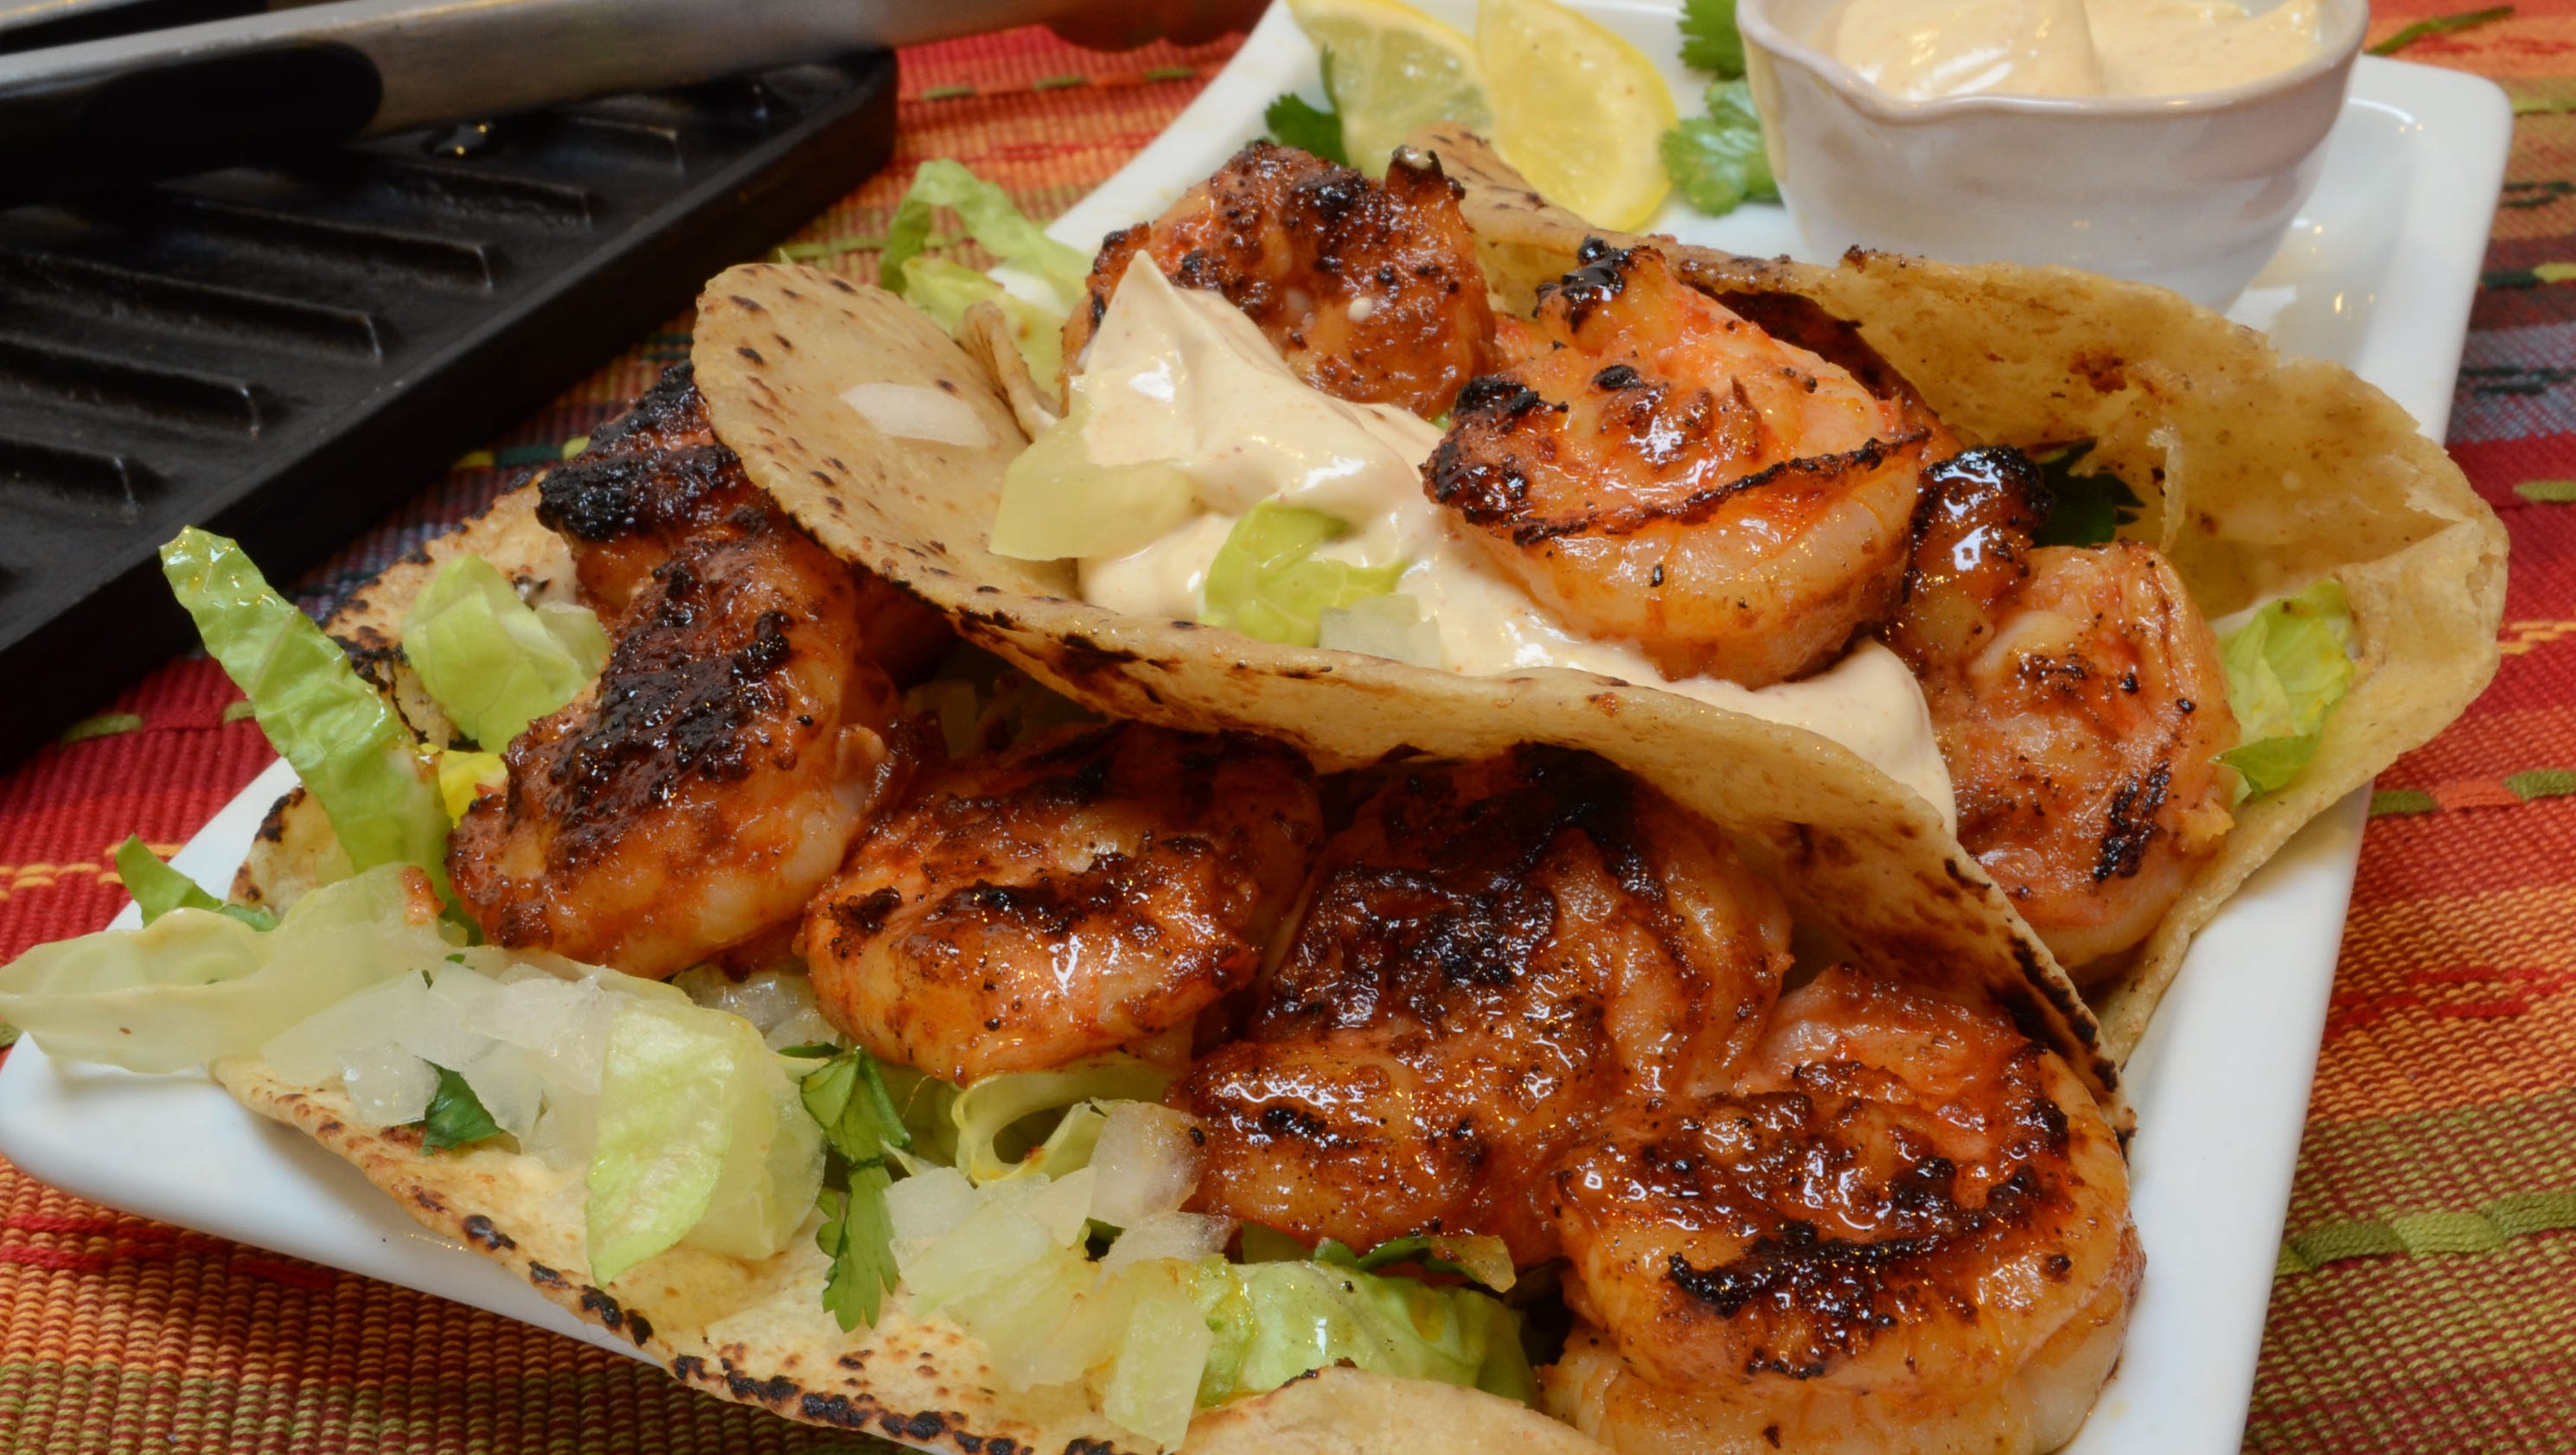 Enjoy summer with these Grilled Shrimp Tacos with a Zesty Cream Sauce